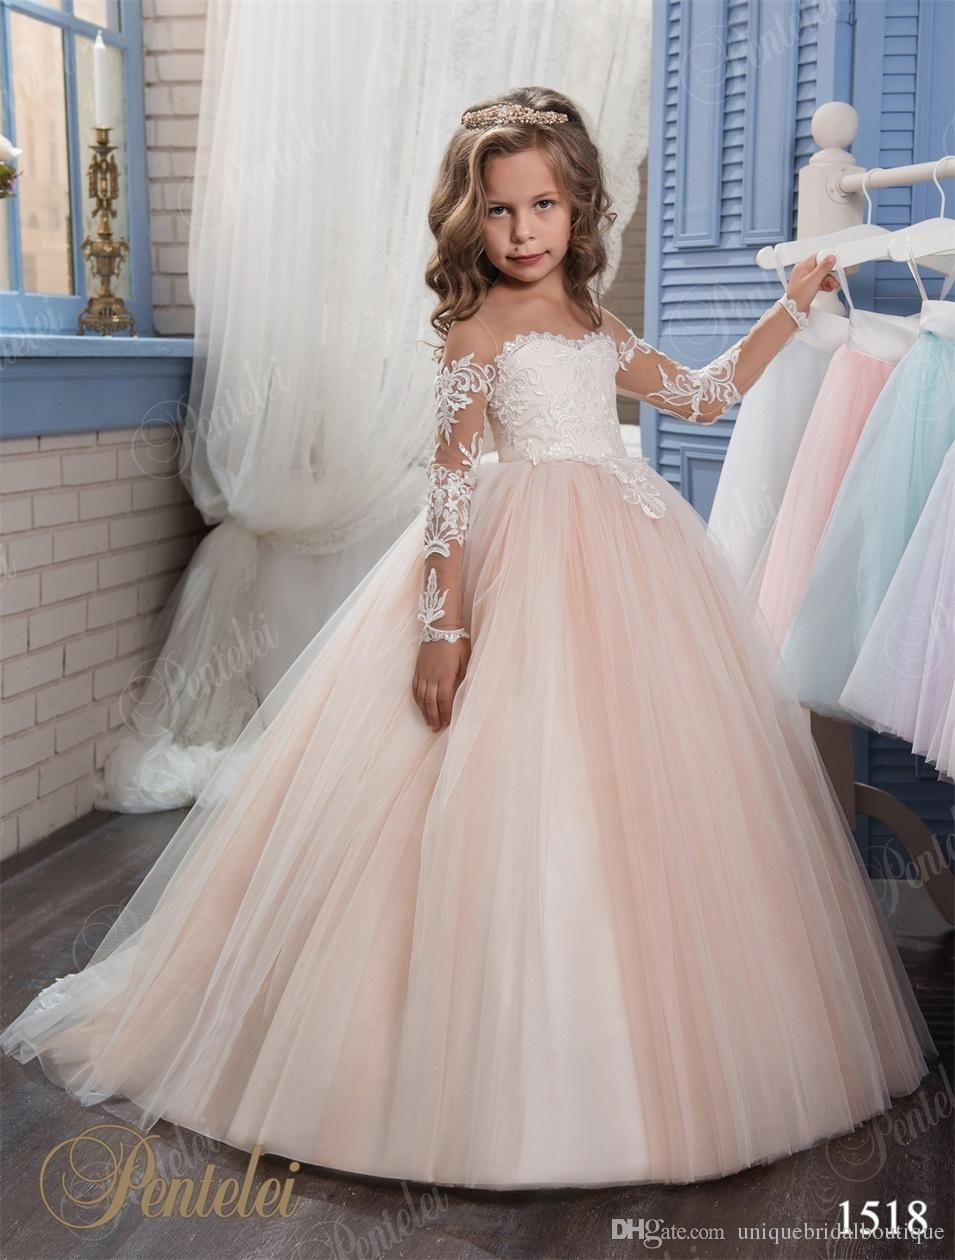 Kids wedding dresses 2017 pentelei with illusion long for Little flower girl wedding dresses